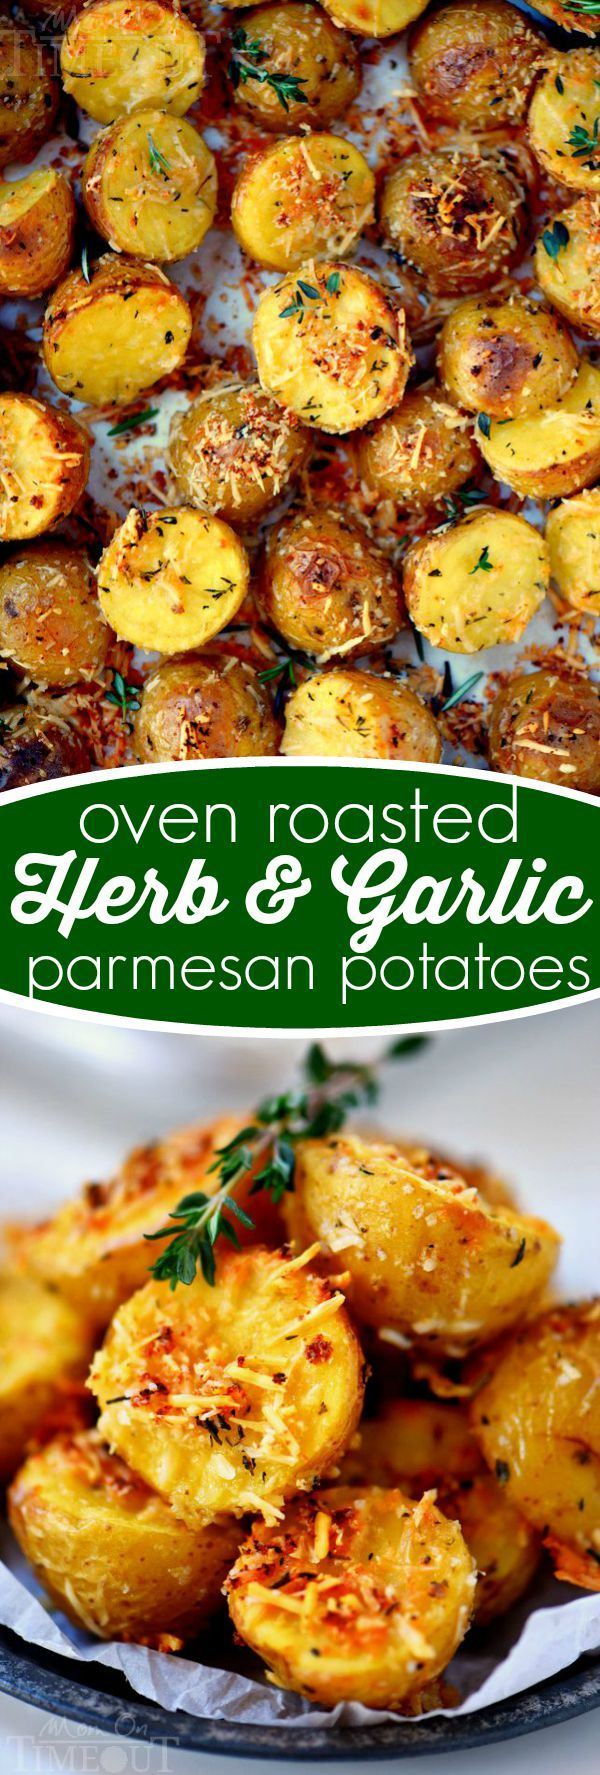 These Oven Roasted Herb and Garlic Parmesan Potatoes are the perfect side dish to whatever youre making for dinner tonight!